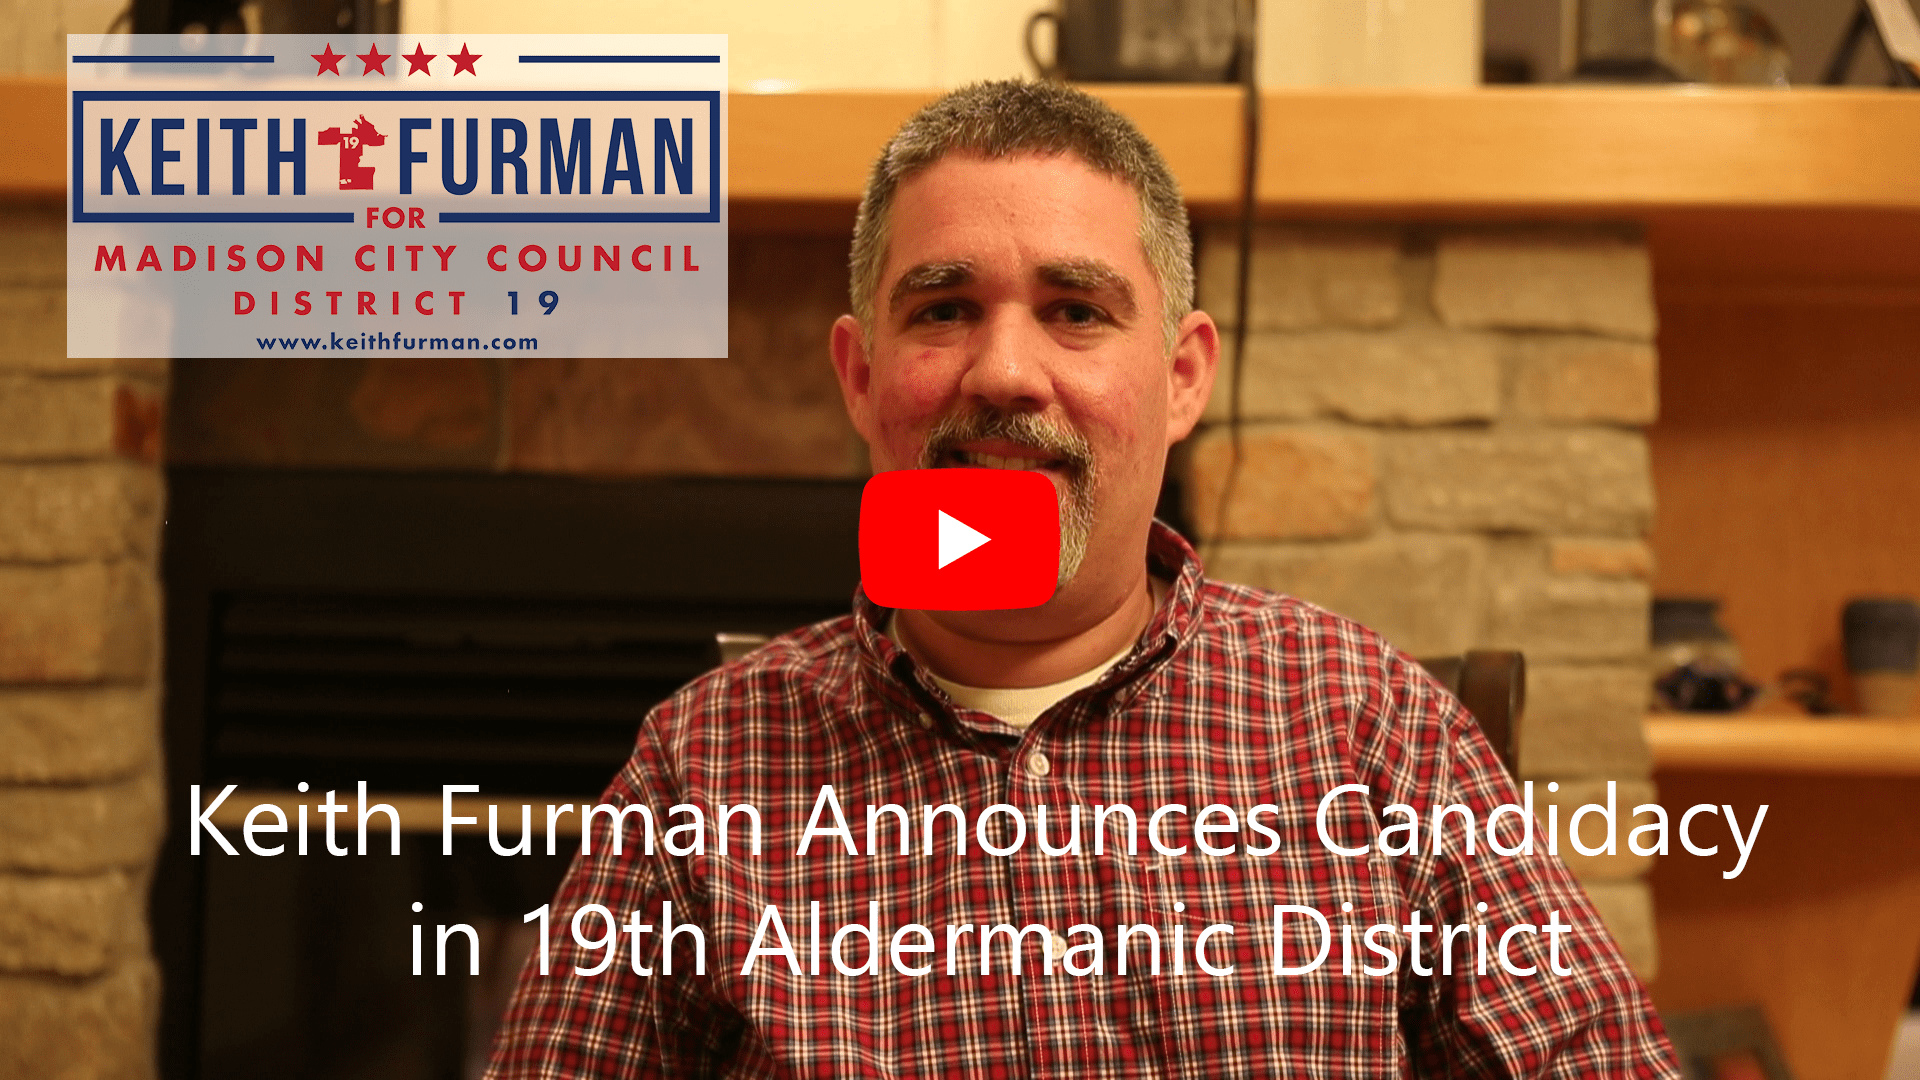 Keith Furman Announces Candidacy in 19th Aldermanic District Video (with captions)